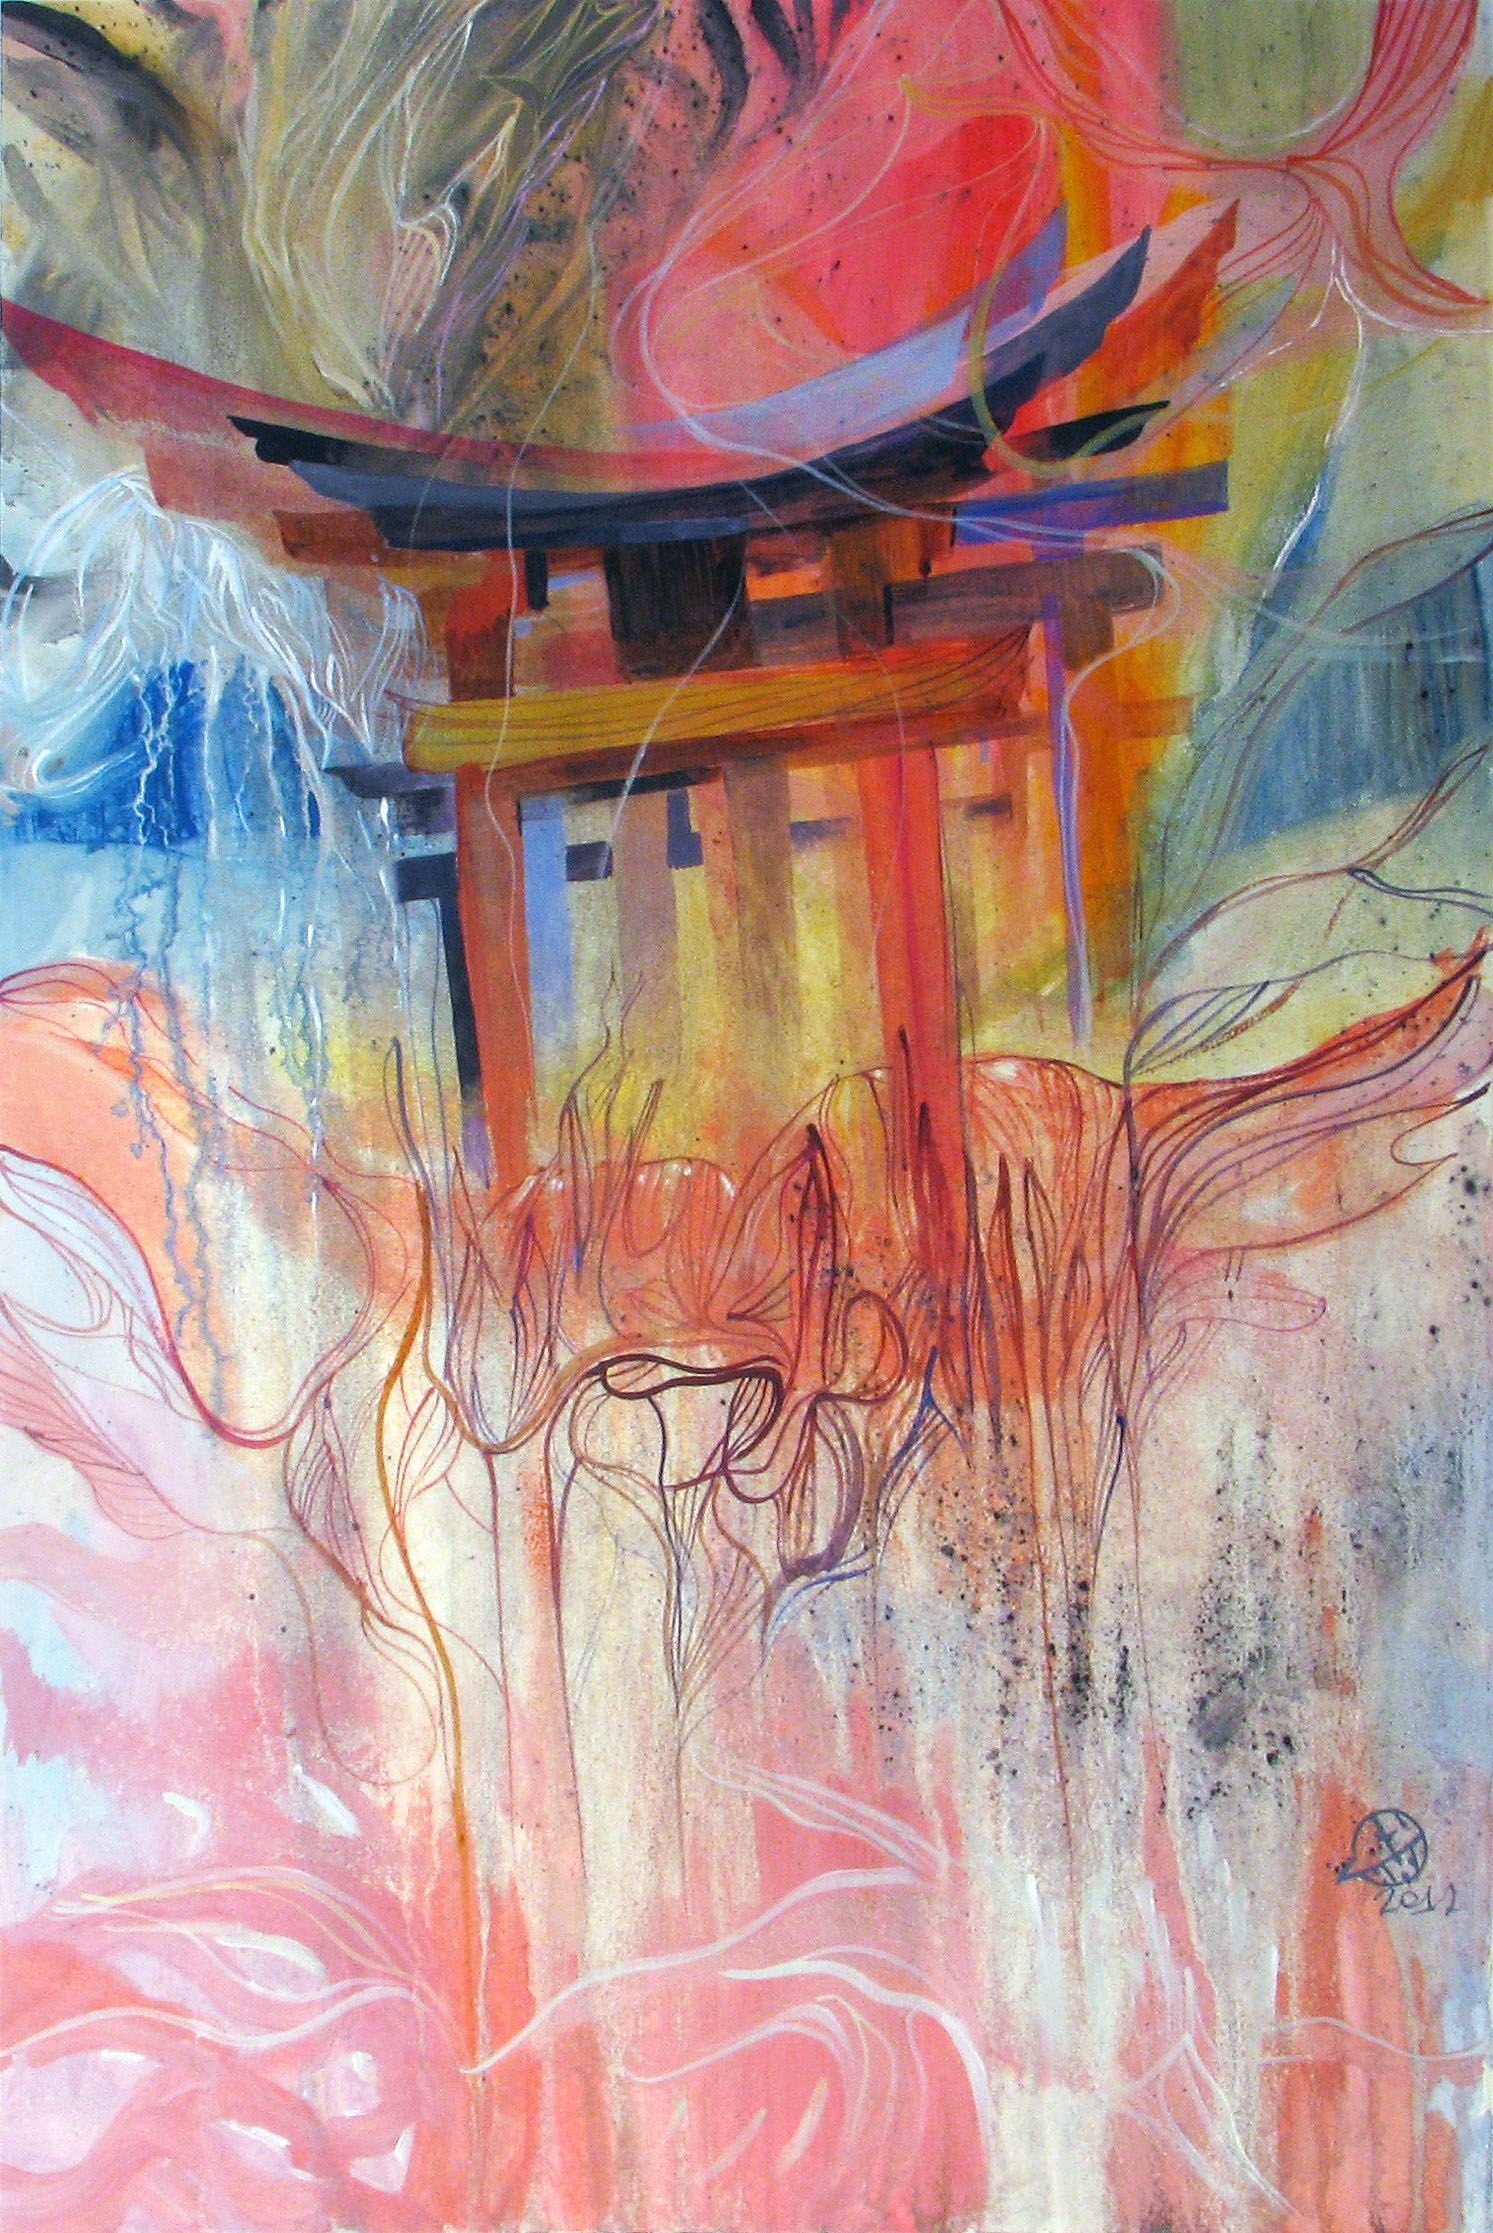 Chinese arch / 2012 / acrylic on paper / 62x42 cm by Sunko Sergei